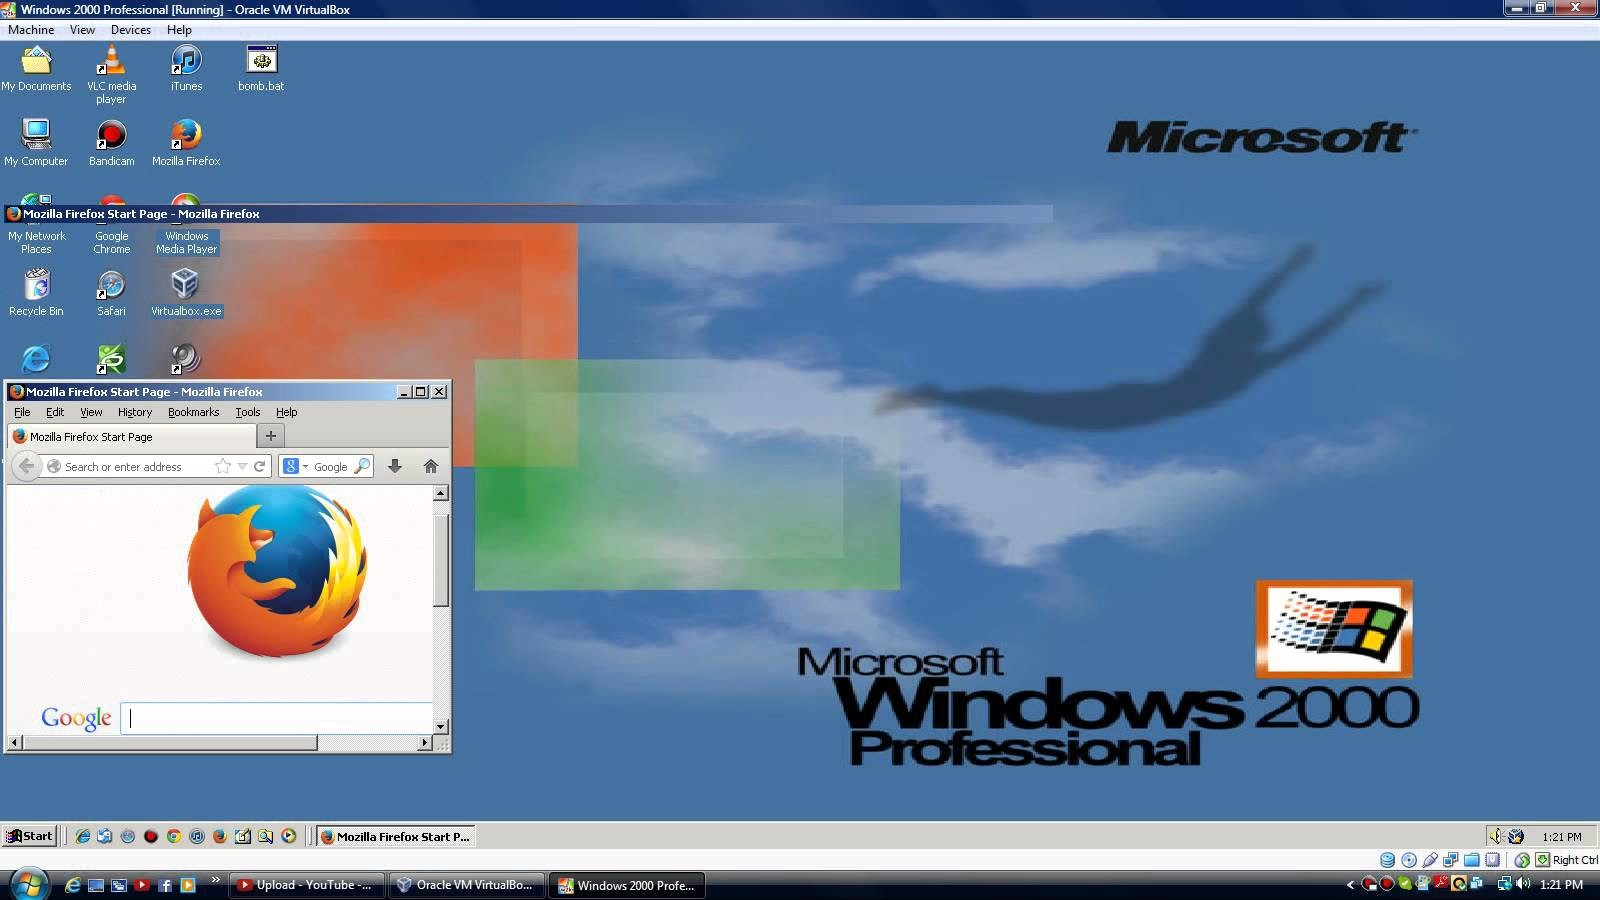 windows 2000 professional vs windows xp essay Windows 2000 professional full version keygen or key generator might contain a trojan horse opening a backdoor on your computer my software you have not saved any software.